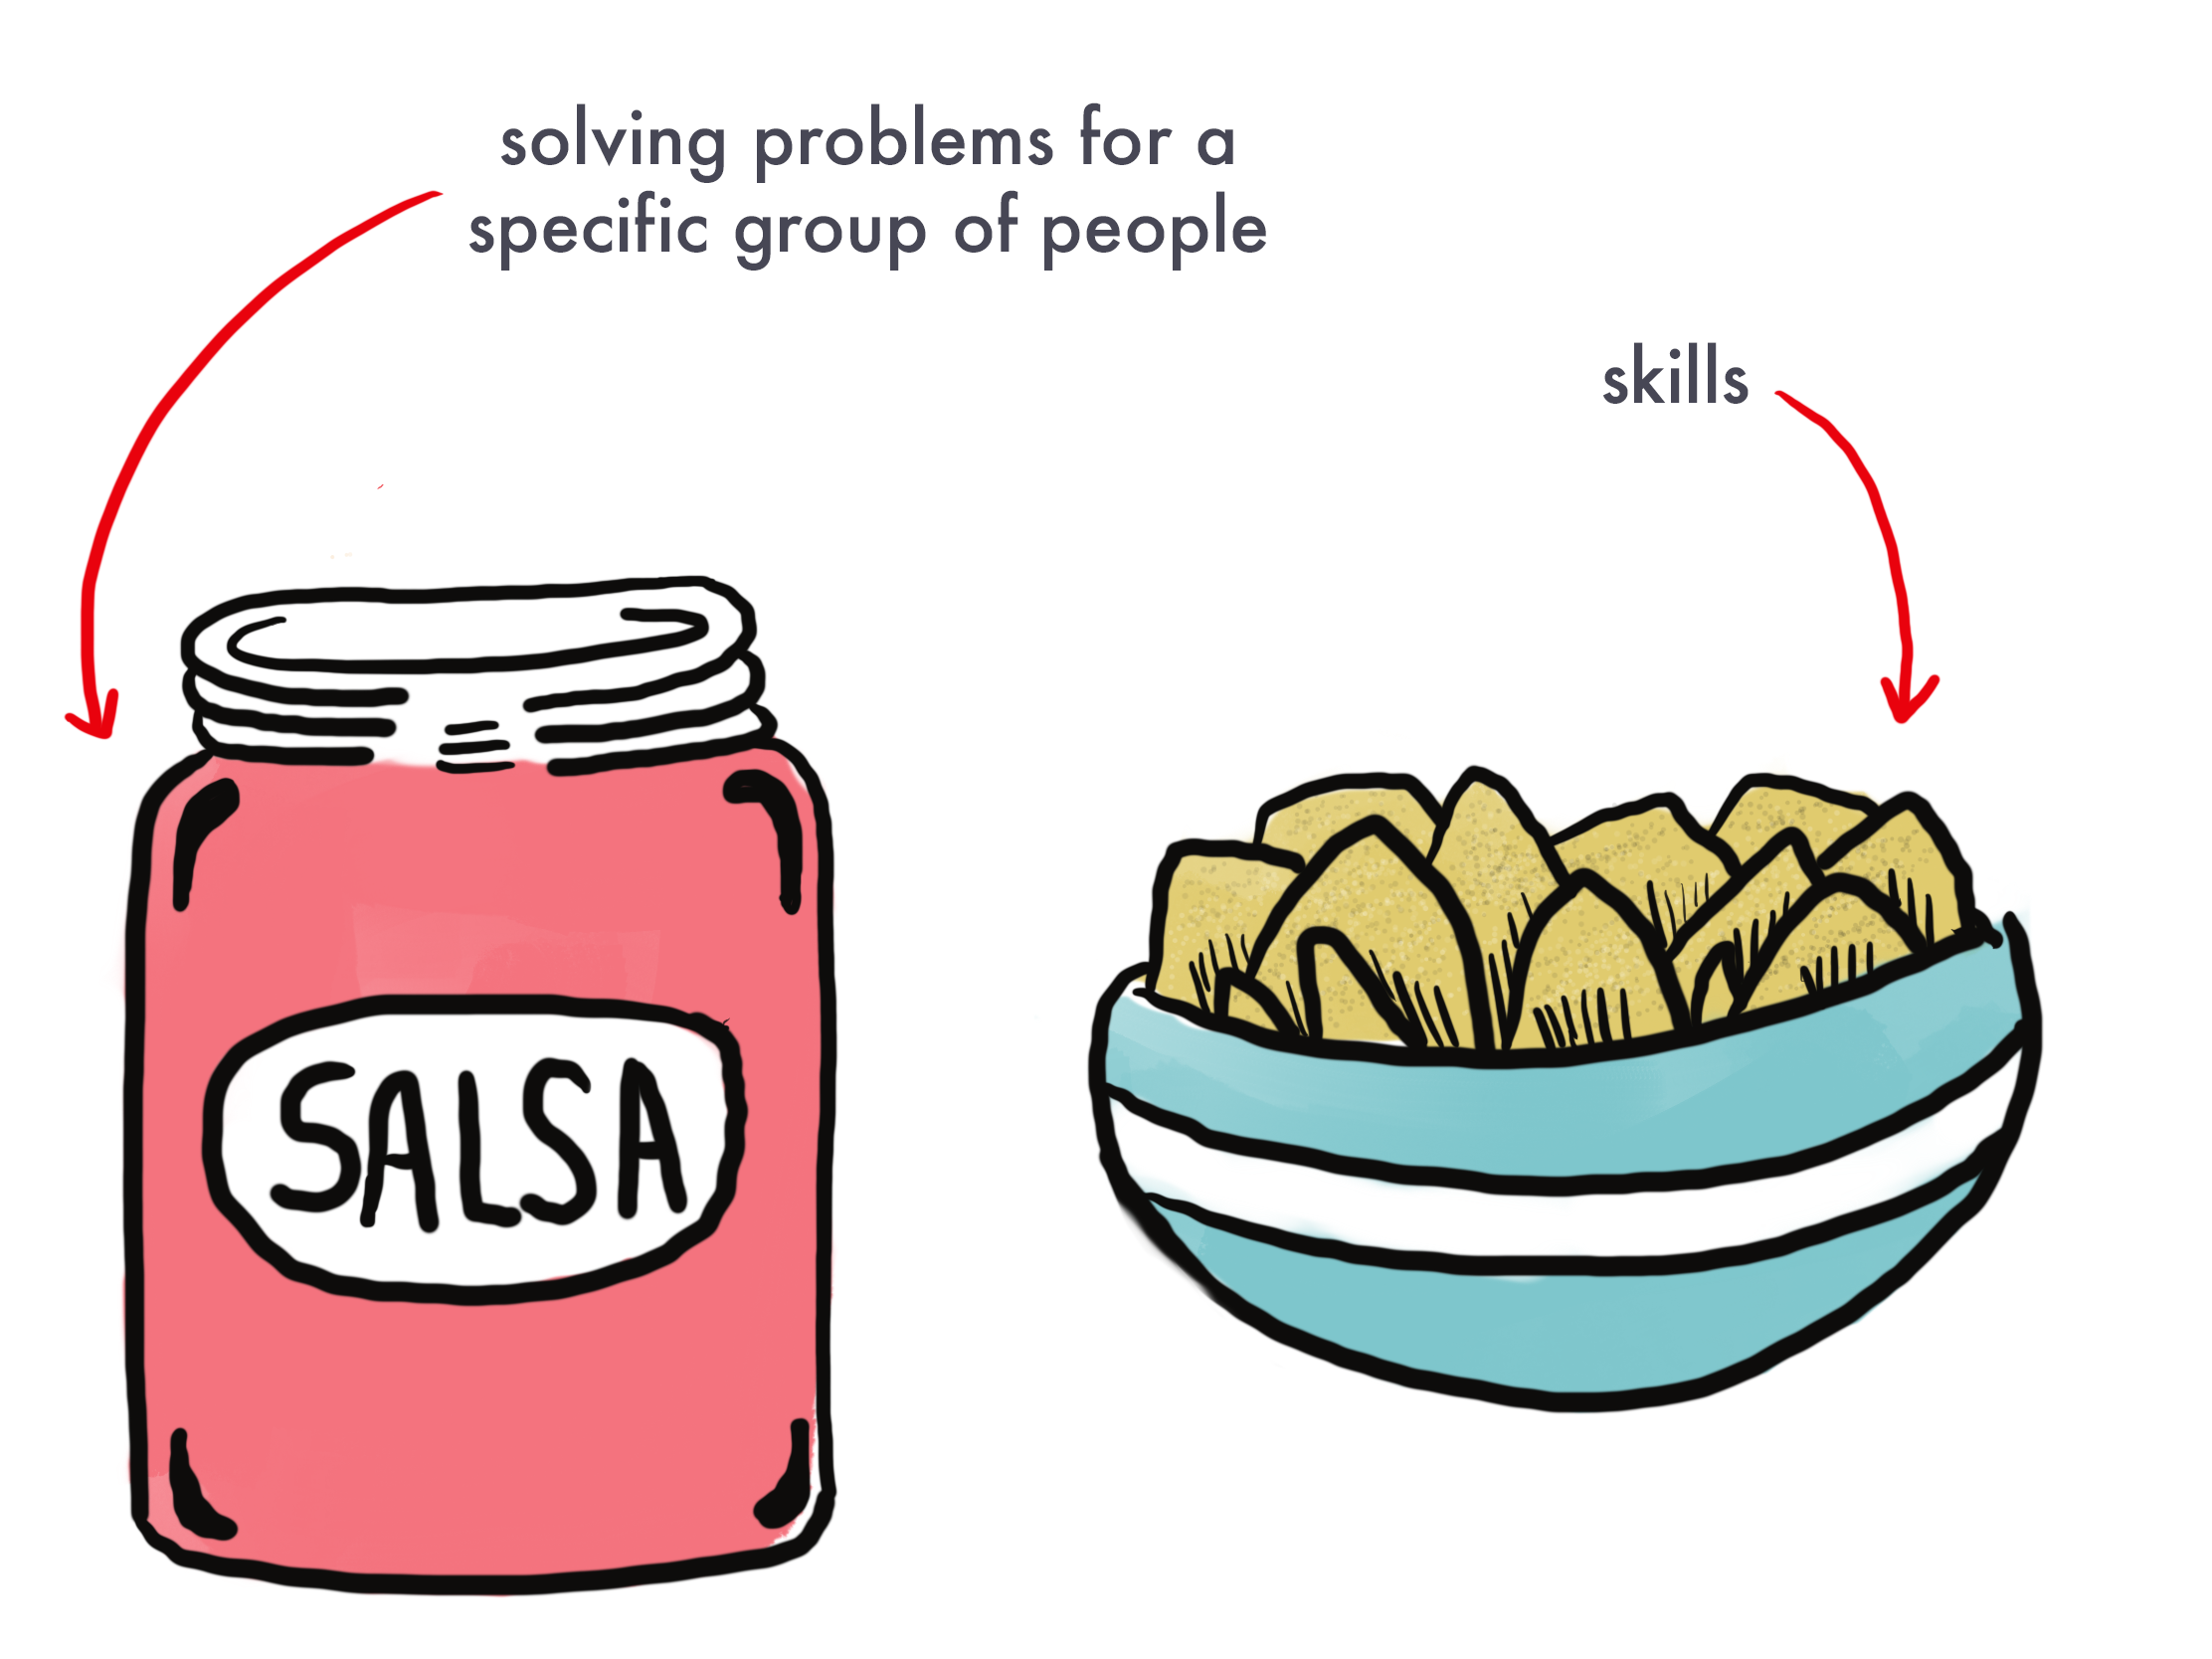 illustration of chips and salsa